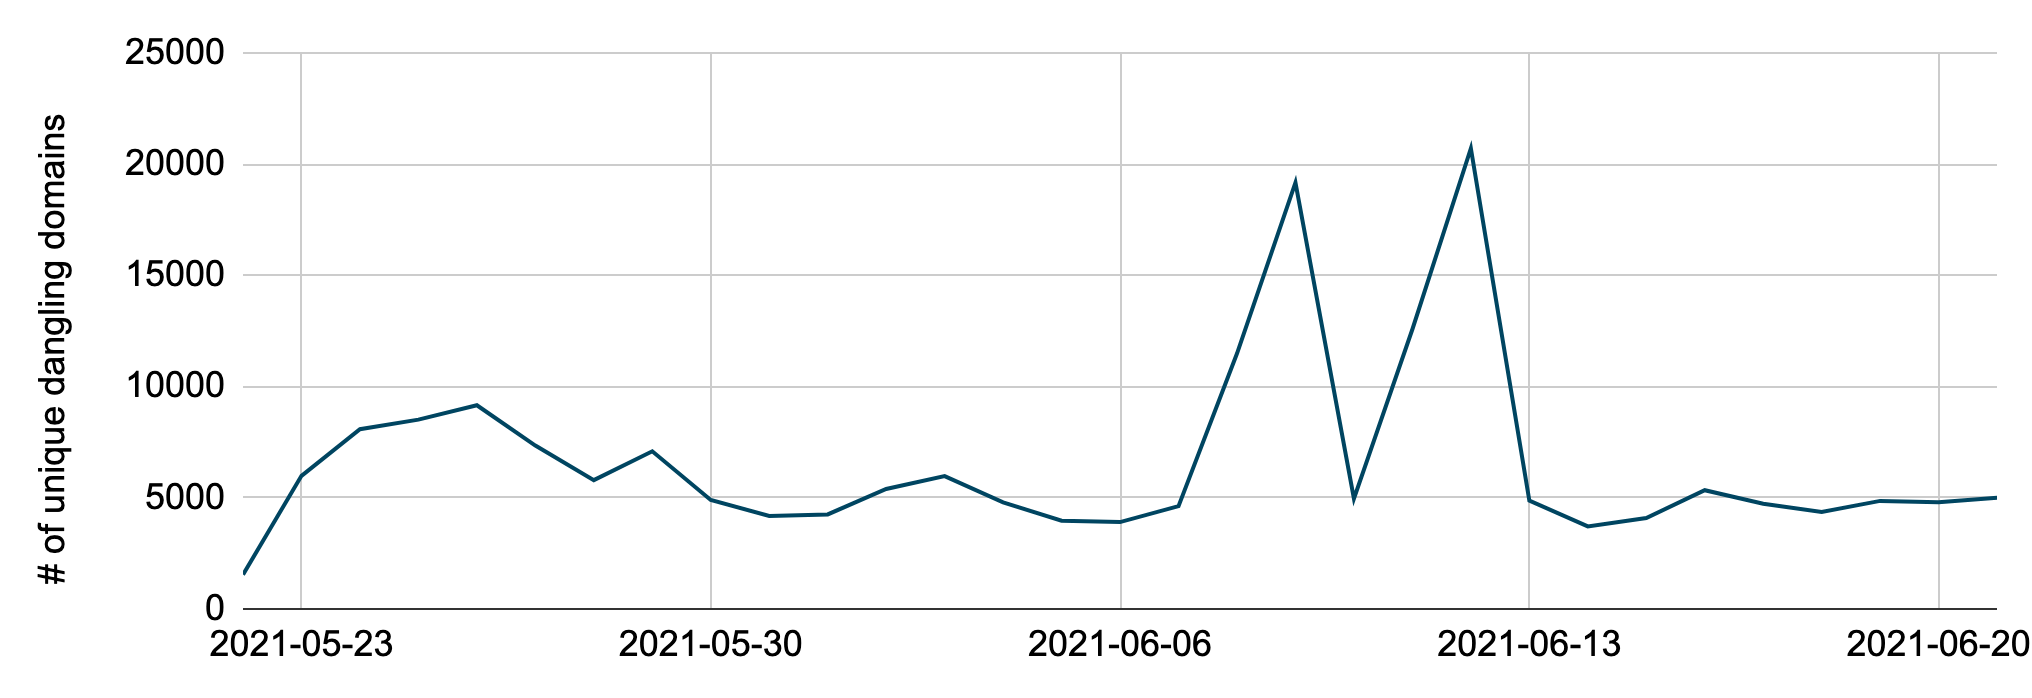 Number of unique dangling domains resolved each day from May 22-June 21, including two spikes (June 9 and June 12) caused by a single domain, which corresponds to over 11,000 unique dangling subdomains on the two days.